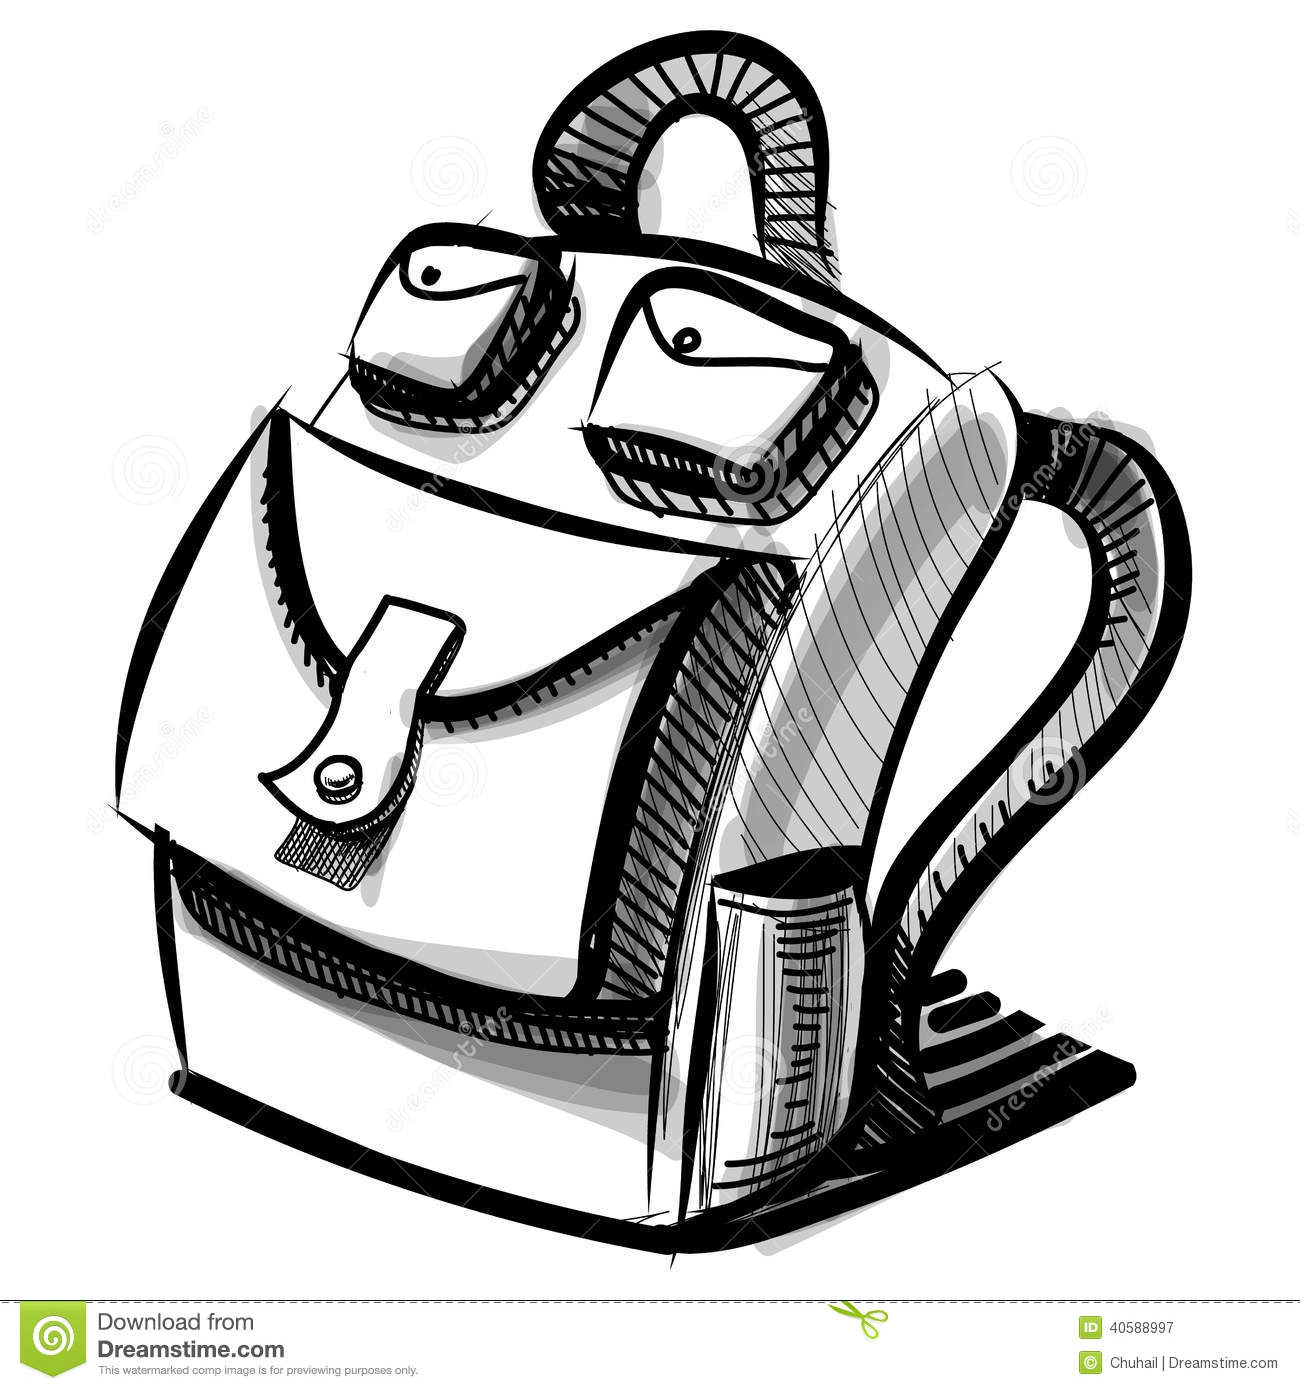 1620536list further Dollar Rose 355588958 moreover Royalty Free Stock Photography School Tourist Backpack Bag Isolated White Vector Sketch Image40588997 as well How To Draw Dark Yugi From Yu Gi Oh likewise School Supplies Coloring Pages. on pencil bag